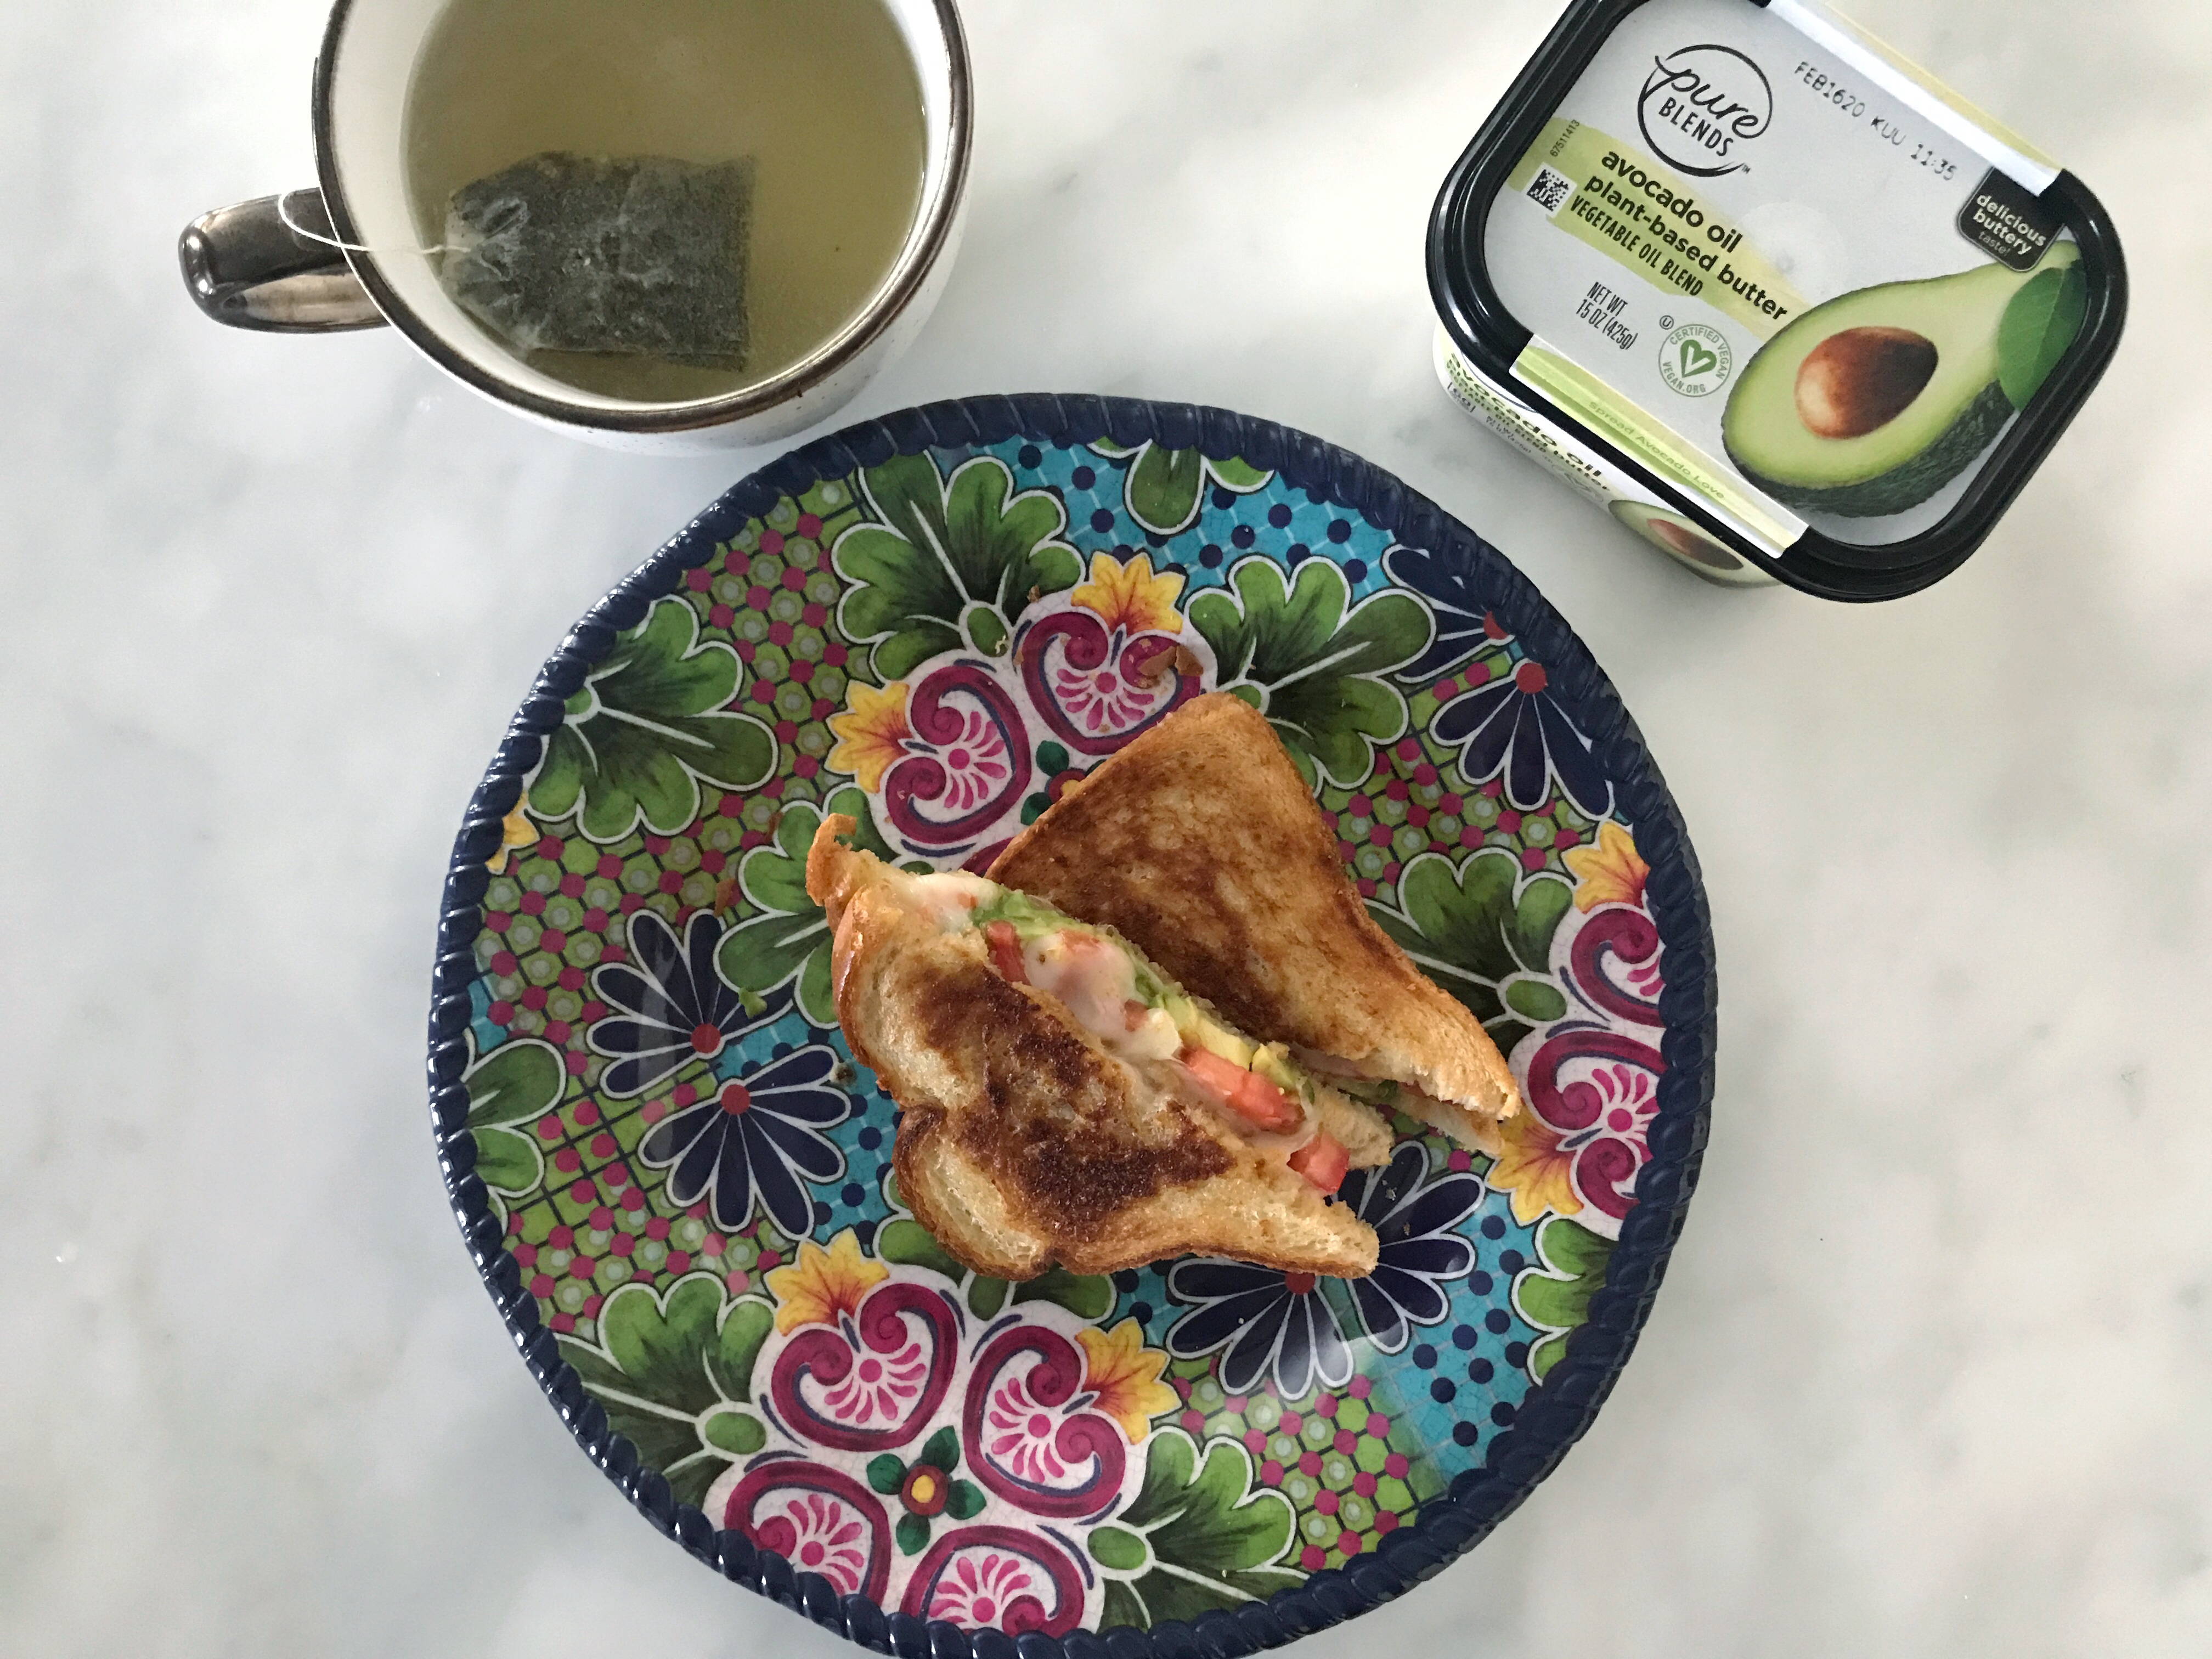 tomato and avocado grilled cheese sandwich pure blends avocado oil plant based butter